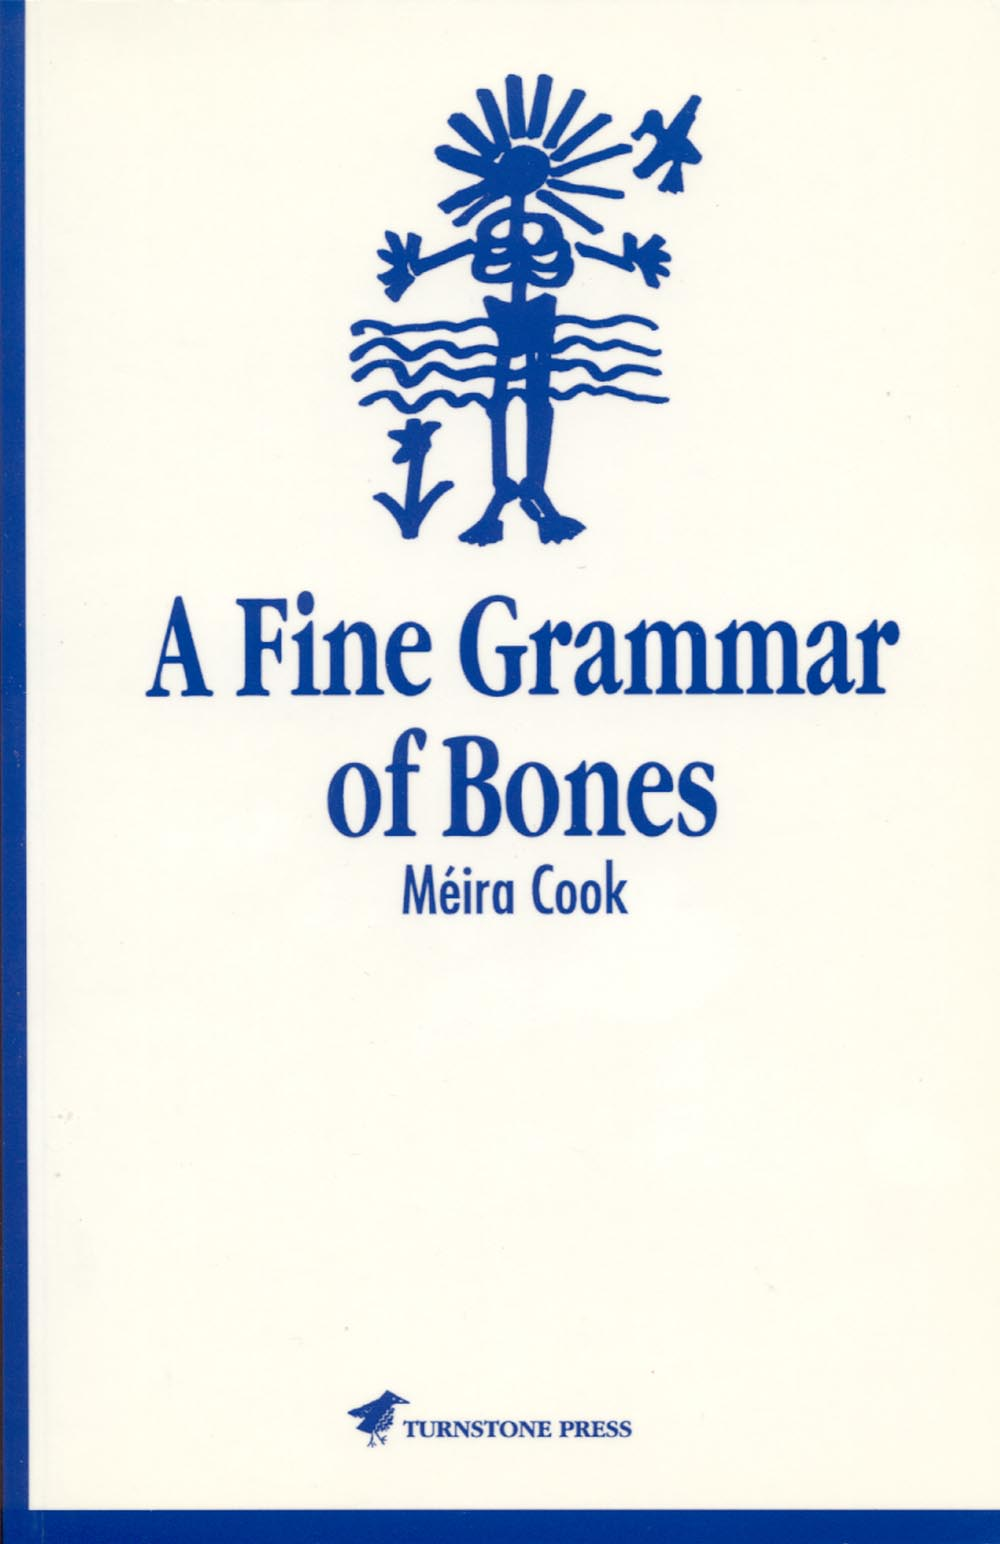 A Fine Grammar of Bones by Meira Cook